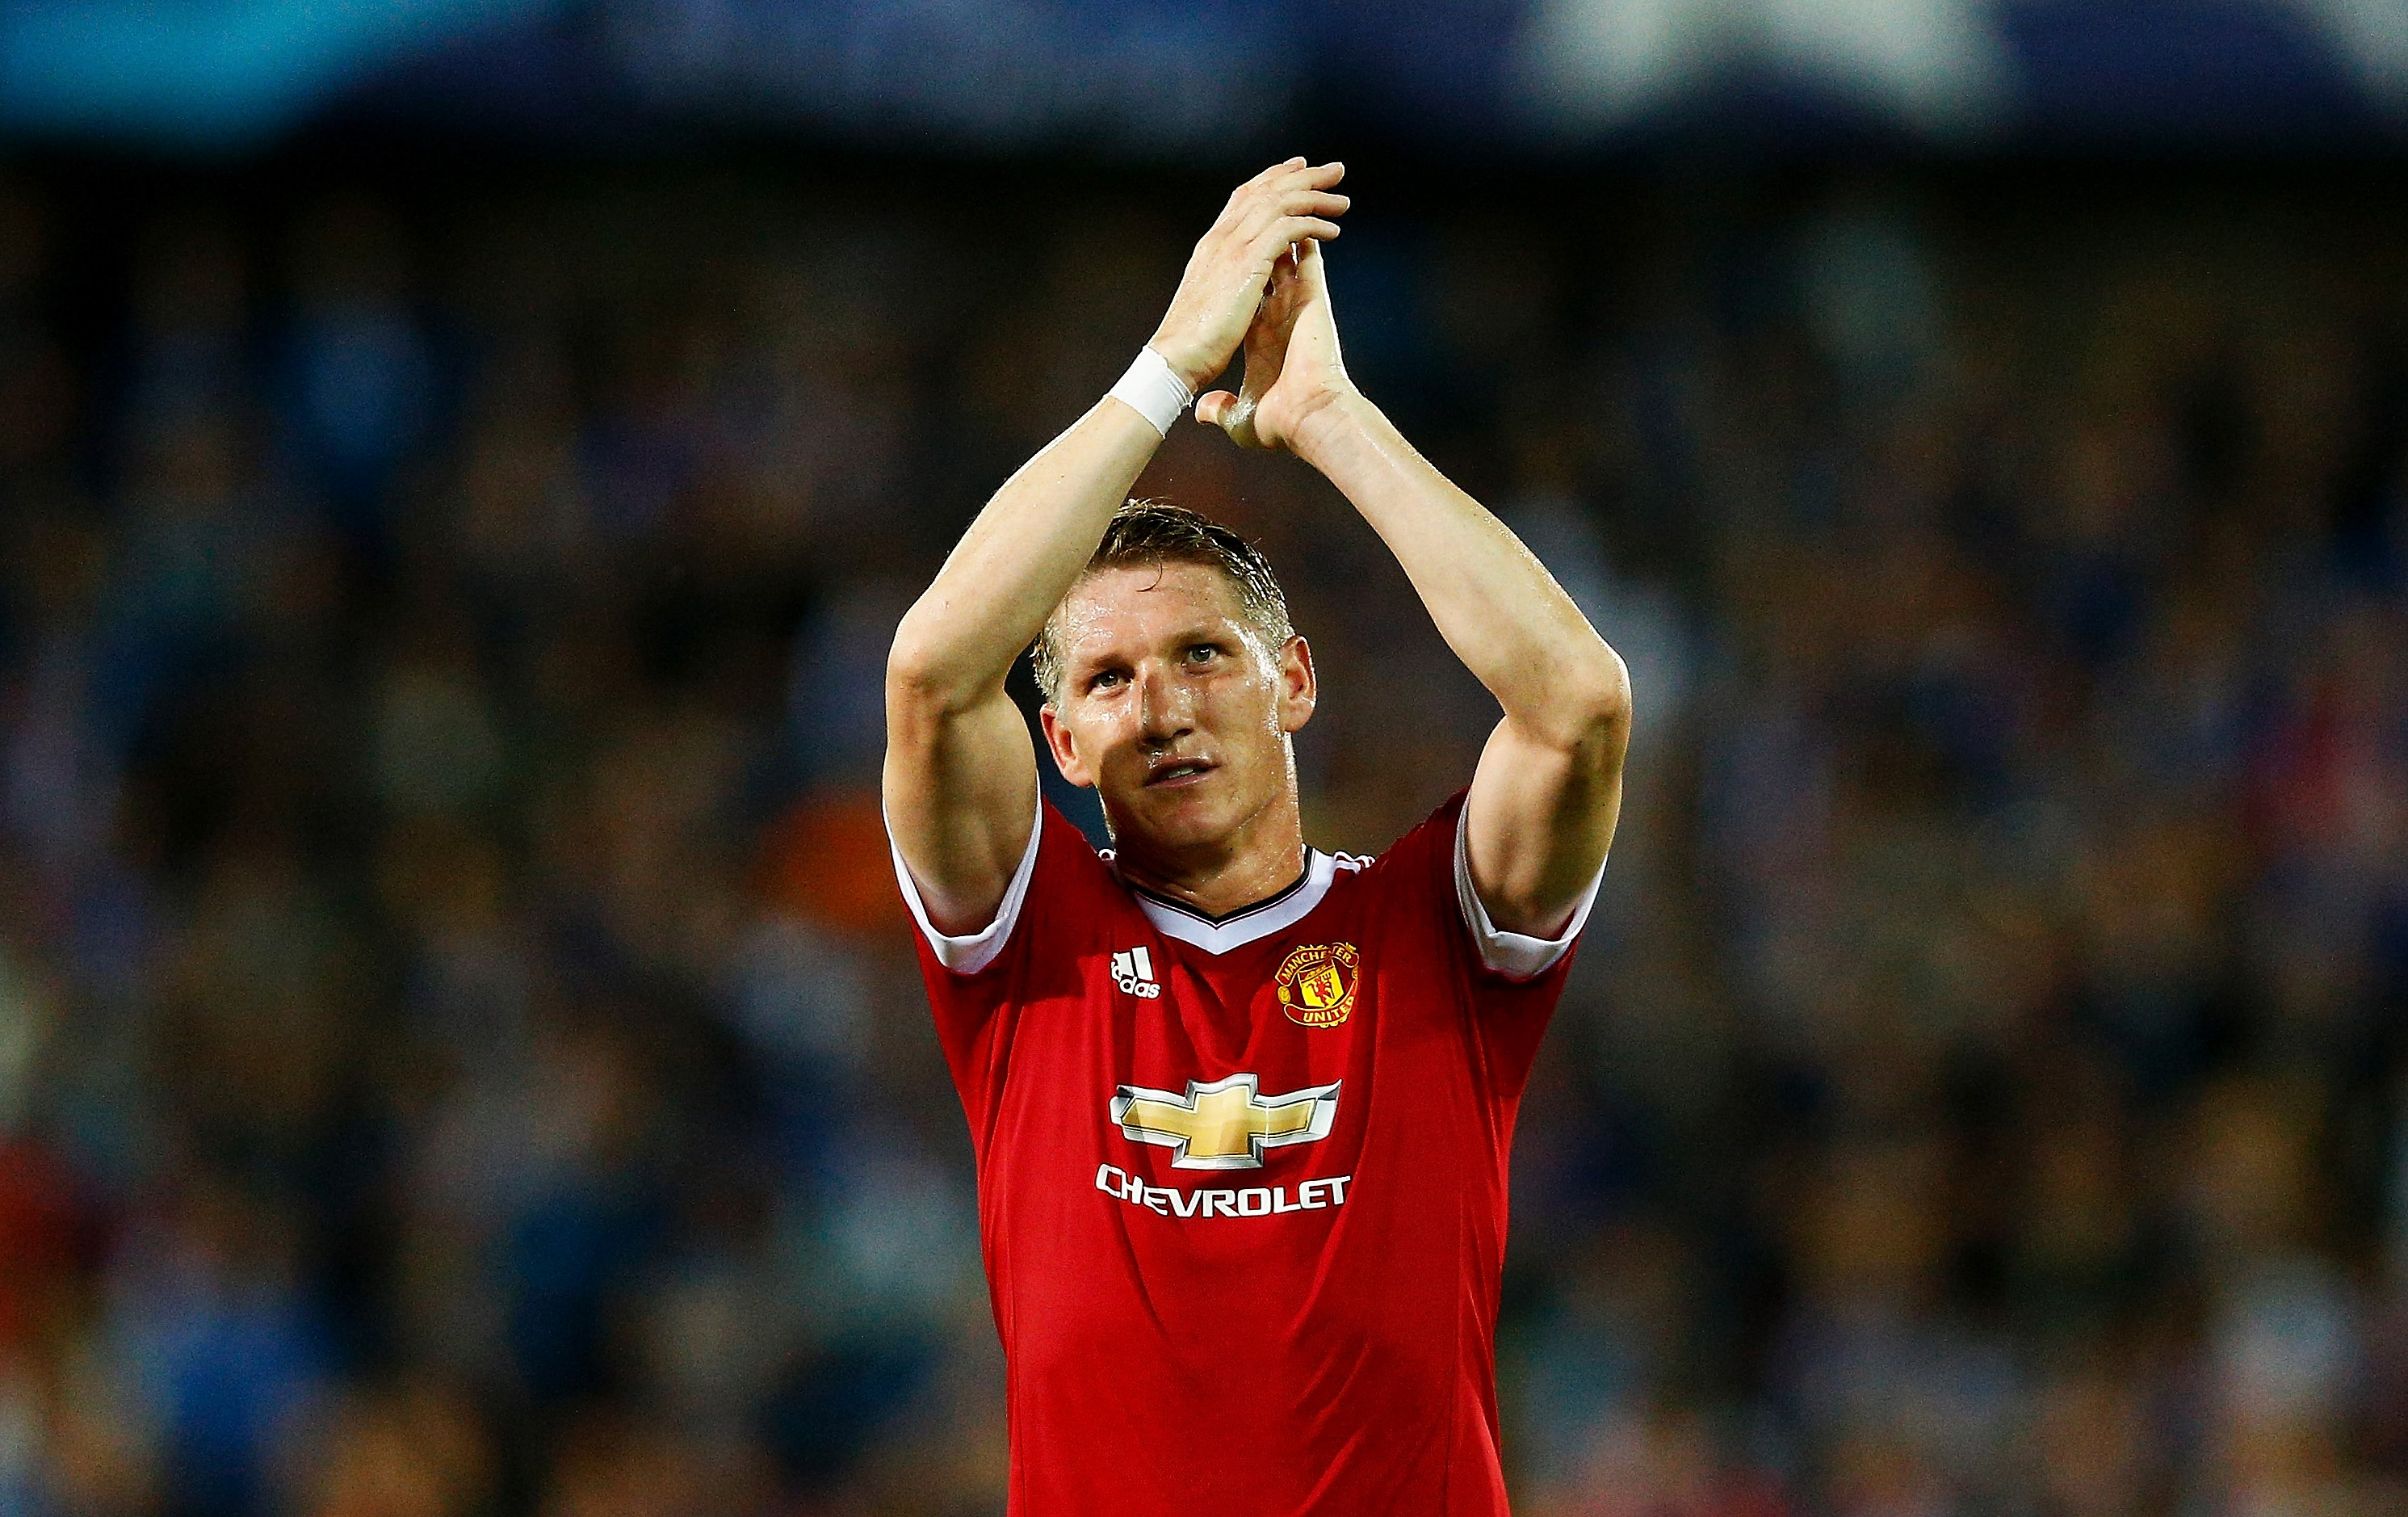 BRUGGE, BELGIUM - AUGUST 26: Bastian Schweinsteiger of Manchester United celebrates after the UEFA Champions League qualifying round play off 2nd leg match between Club Brugge and Manchester United held at Jan Breydel Stadium on August 26, 2015 in Brugge, Belgium. (Photo by Dean Mouhtaropoulos/Getty Images)